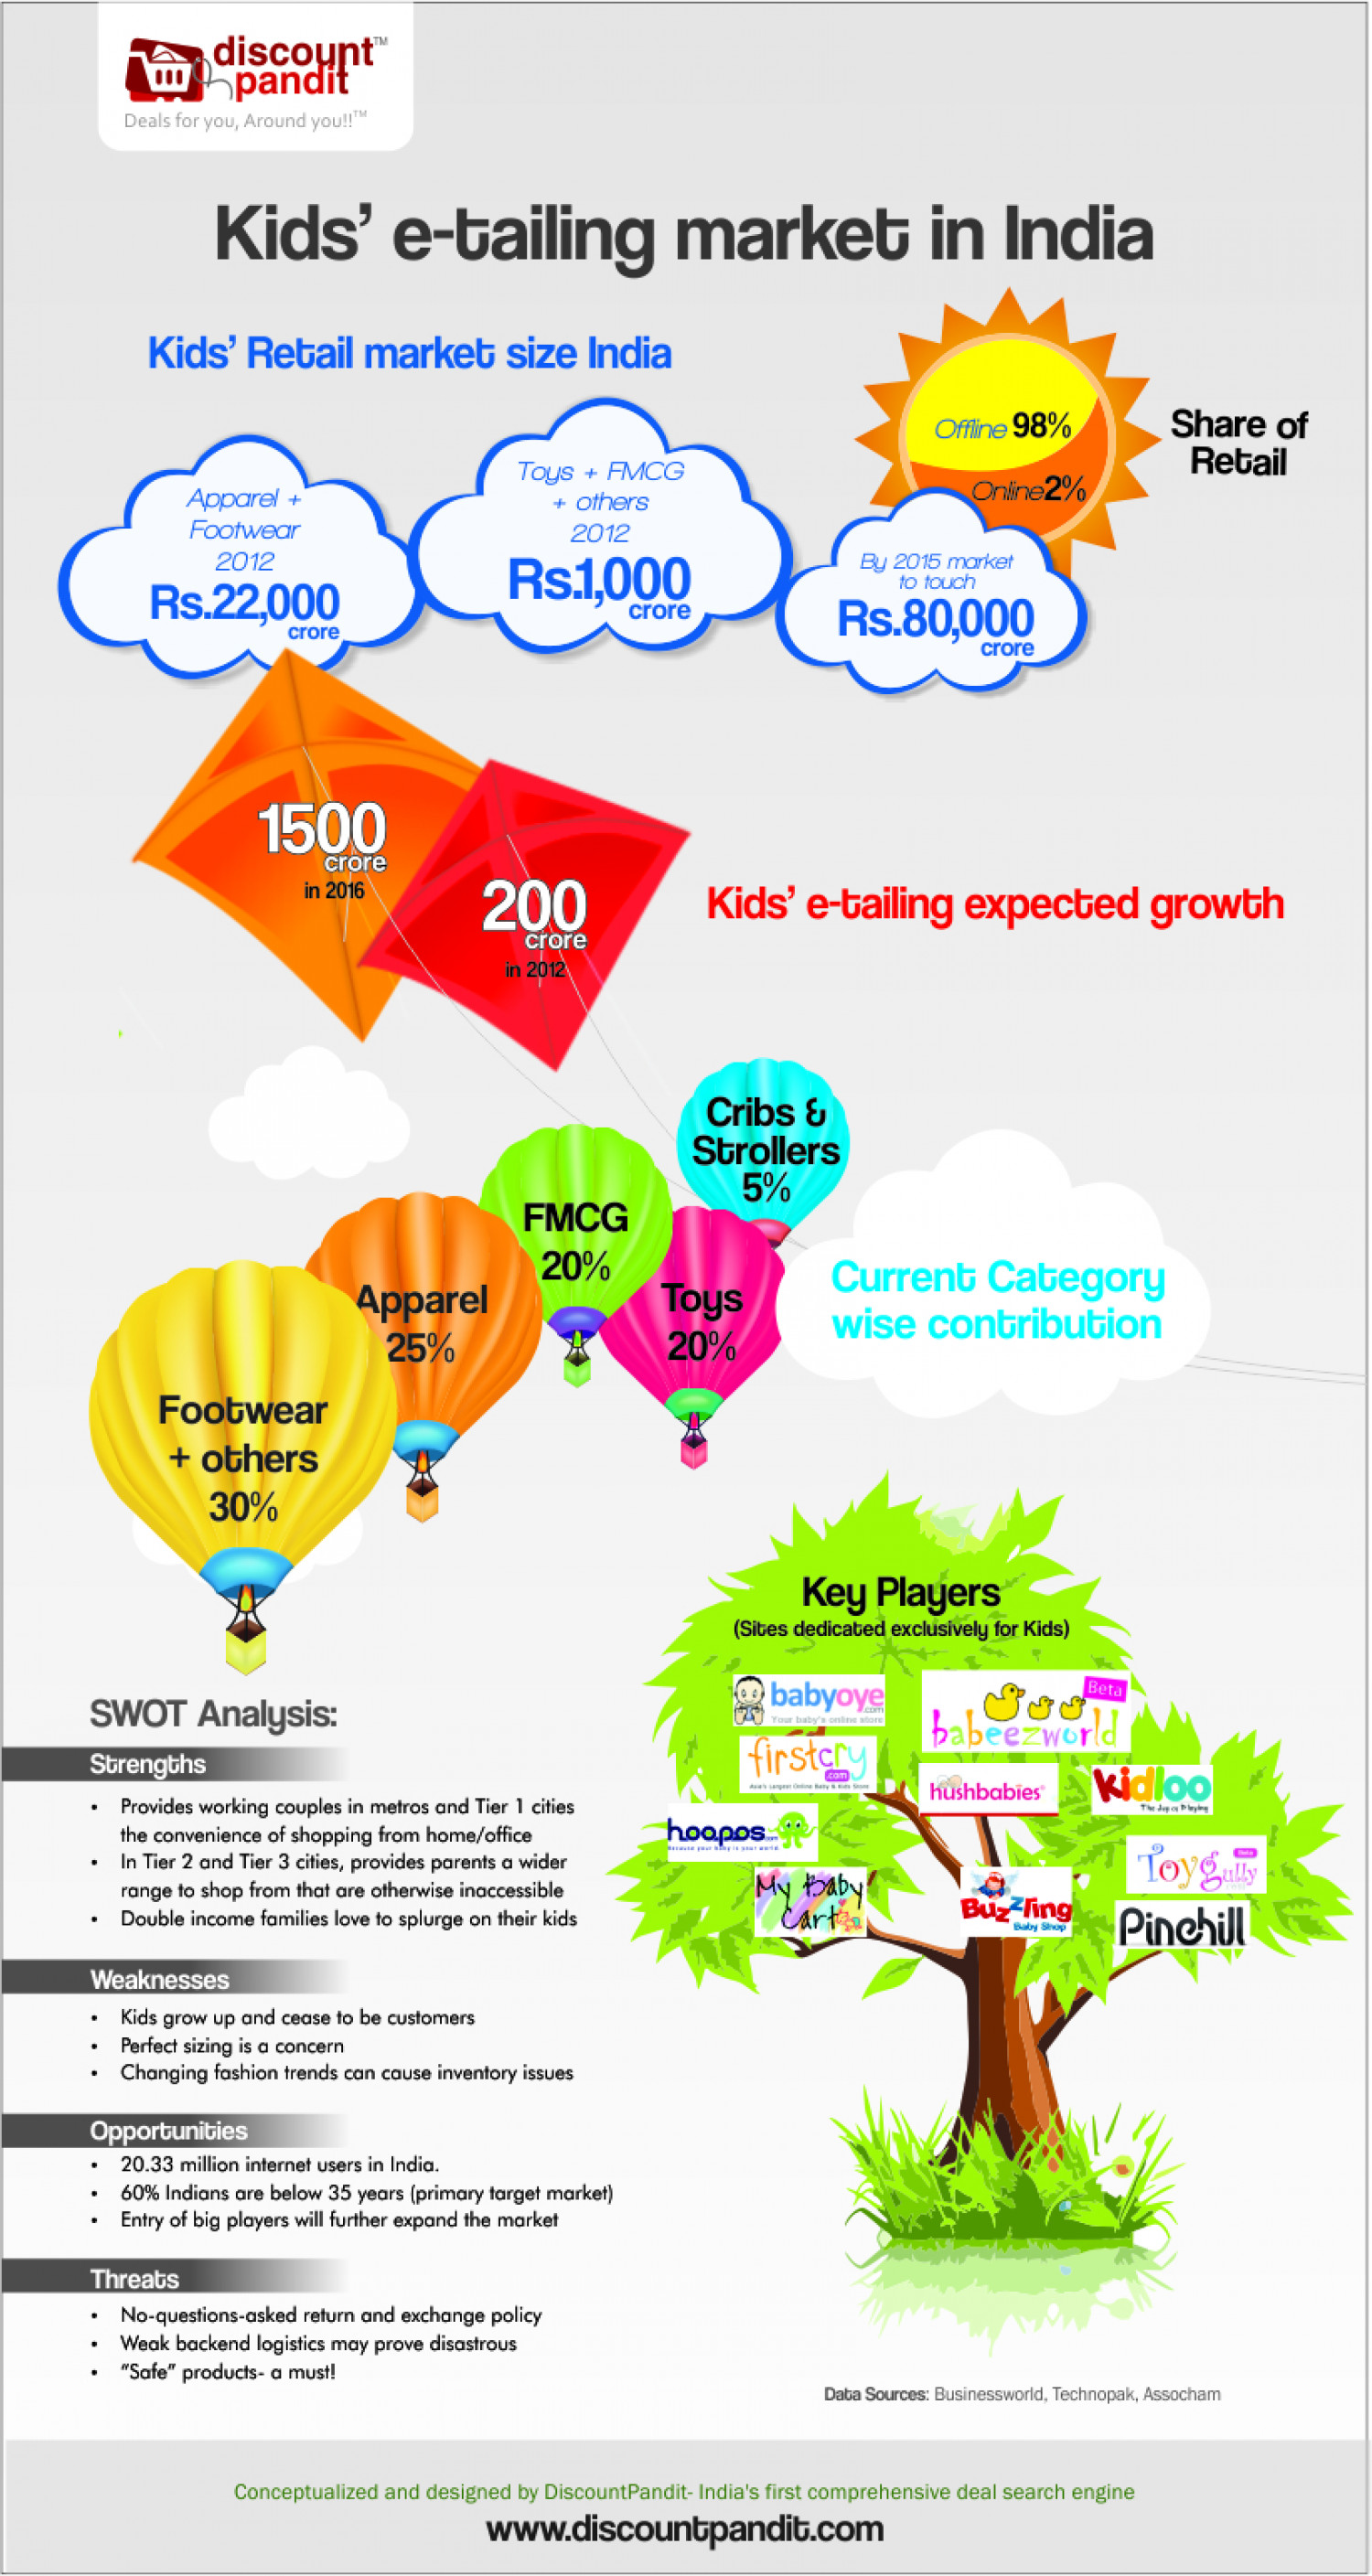 Kids' e-tailing market in India Infographic